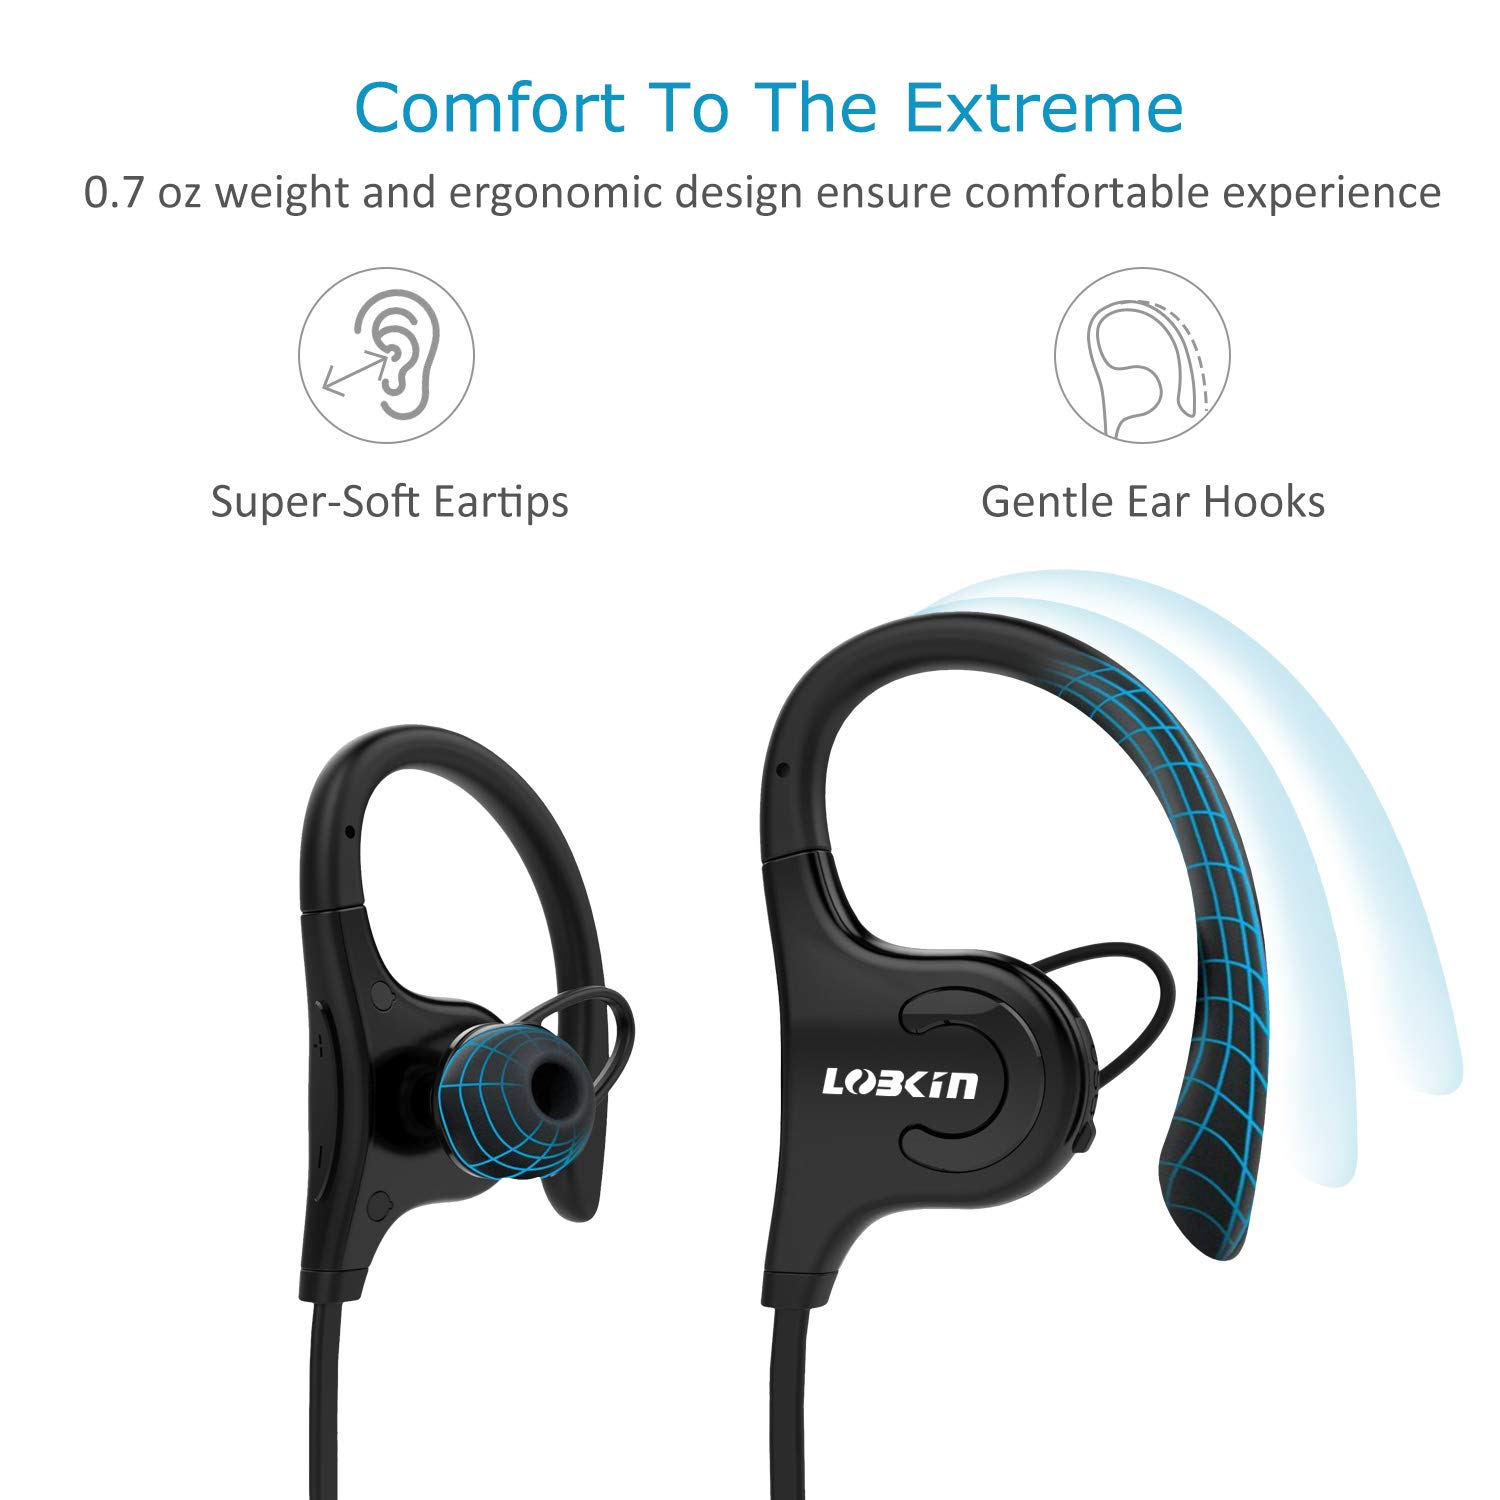 Bluetooth Headphones, LOBKIN S2 Waterproof IPX5 Wireless Earbuds Sport, HD Stereo in-Ear Earphones w/Mic, Noise Cancelling Headsets (Black)